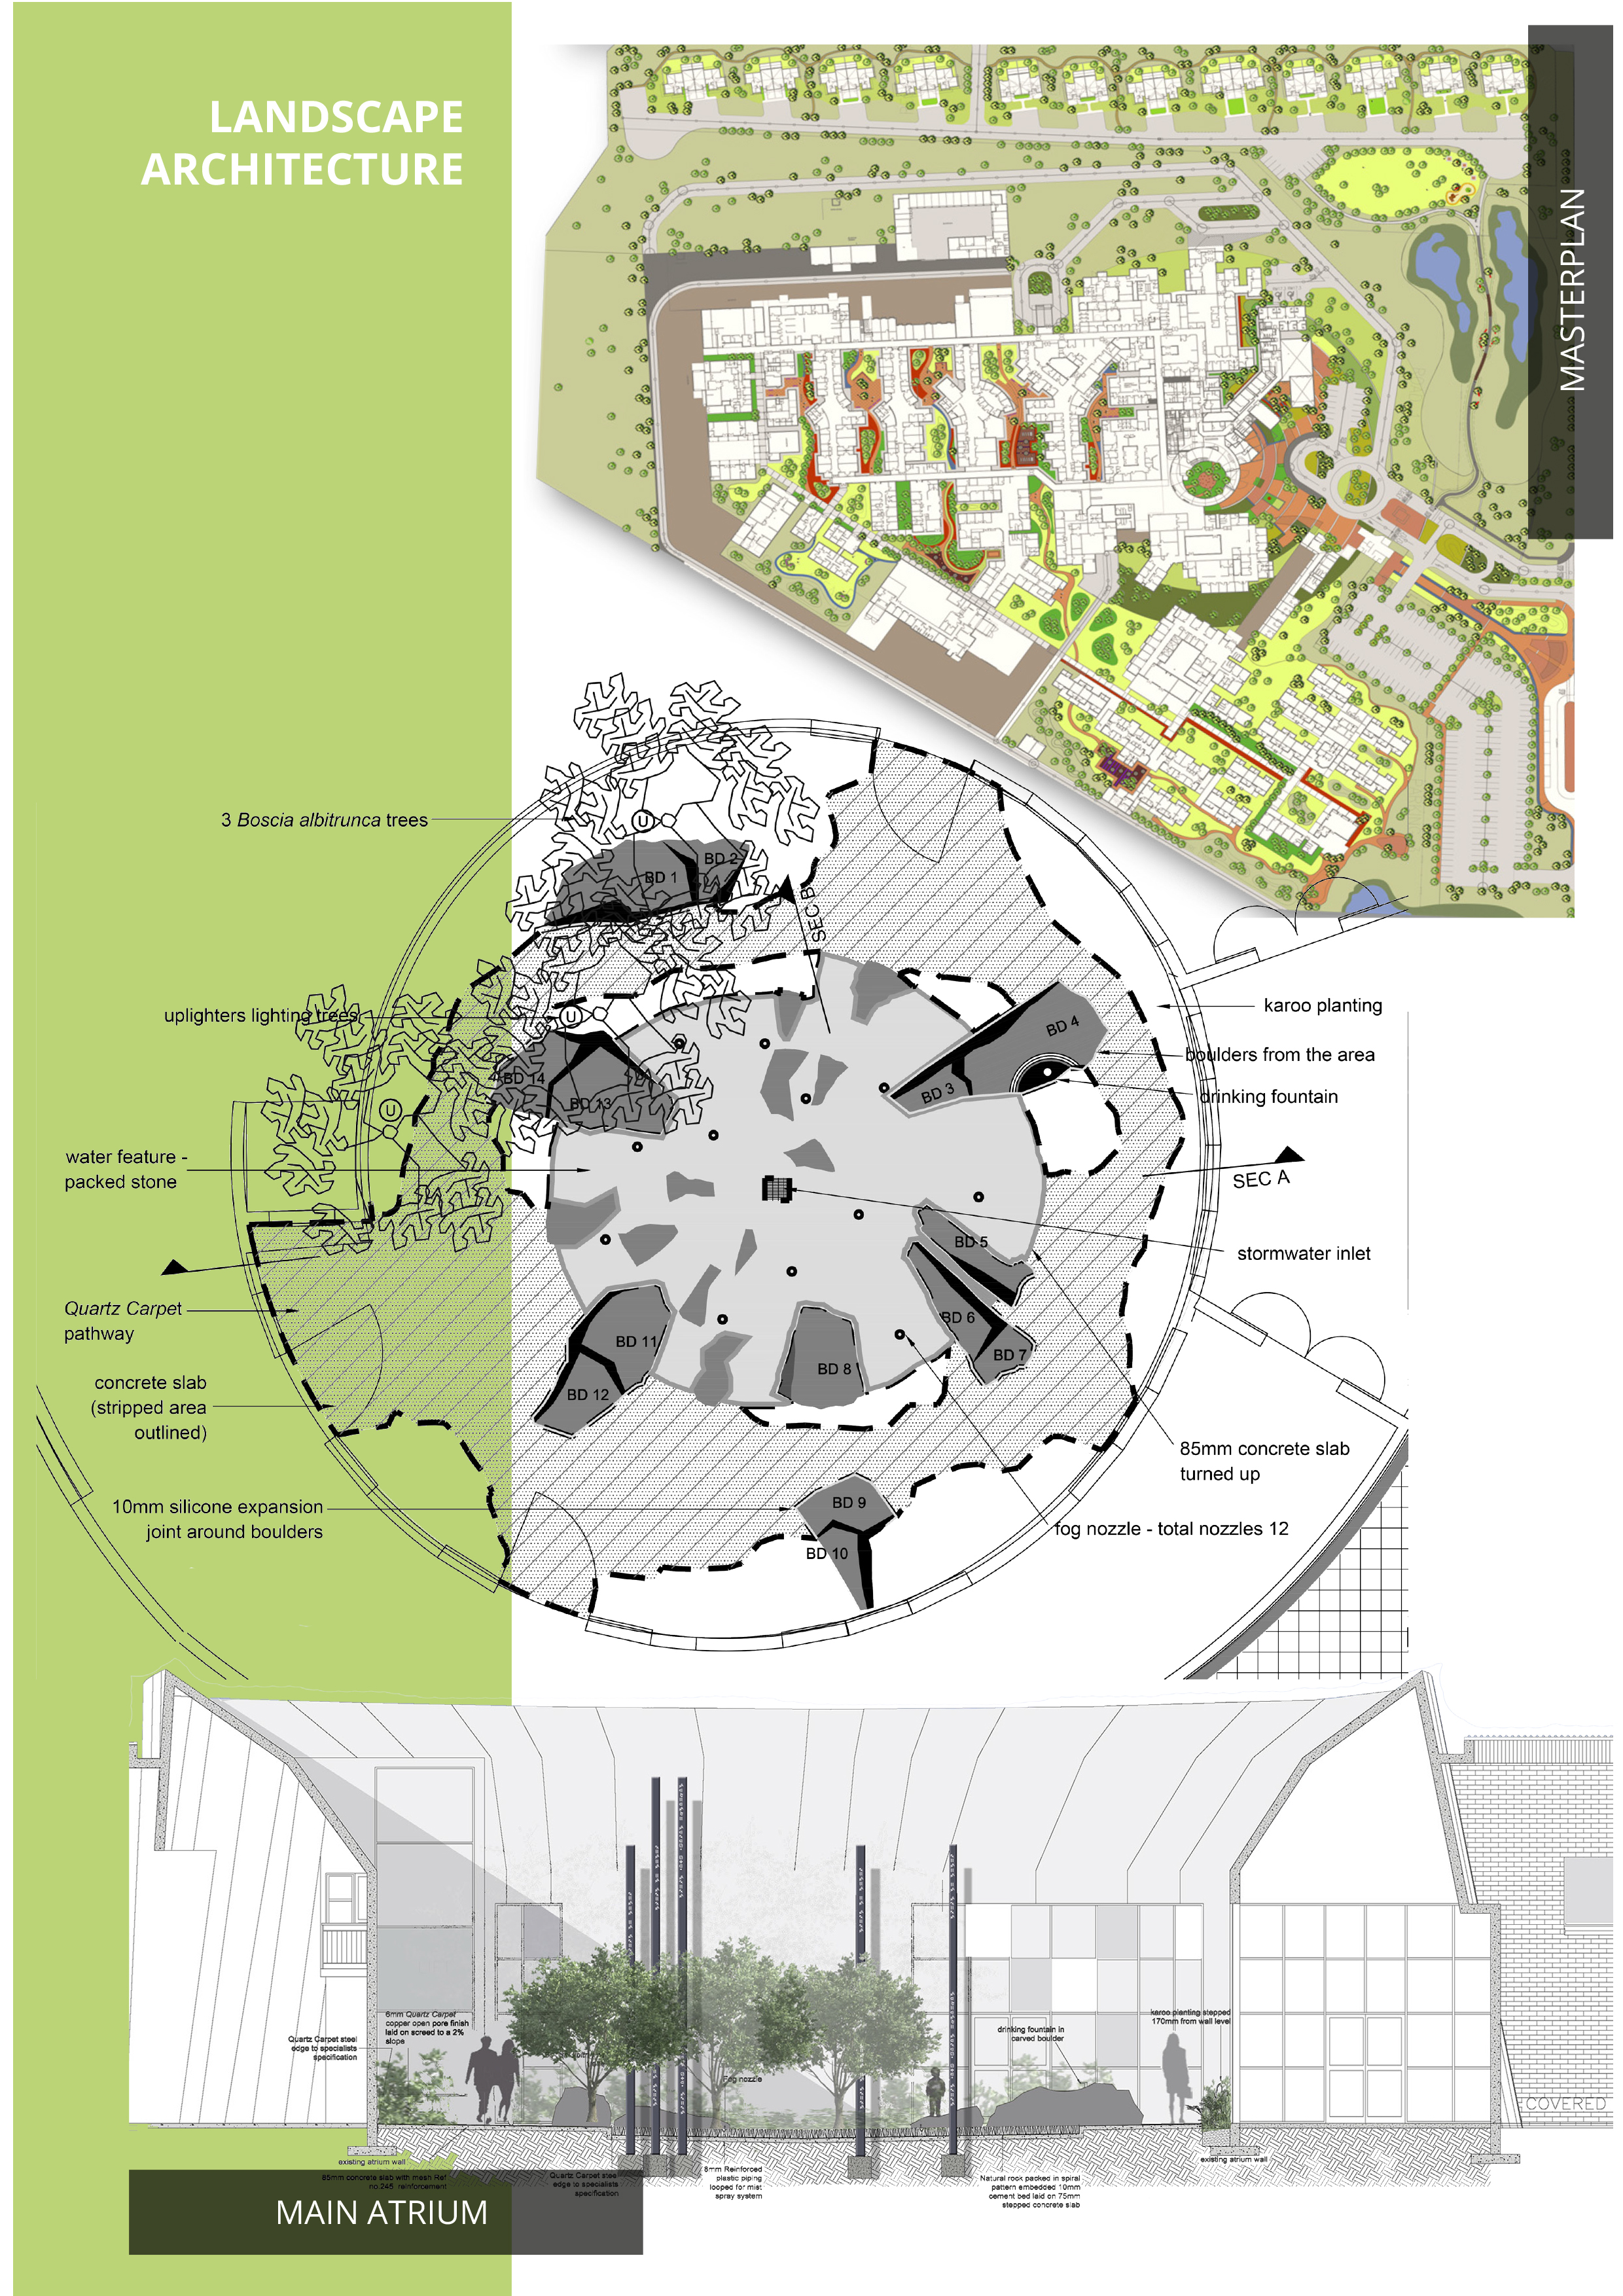 De Aar Hospital - The landscape design approach is contextual, drawing on the landscape, culminating in a product of culture, topography, vegetation, climate and ecological processes. From a landscape perspective we aimed to emulate the natural vegetative response to climatic cycles, which resulted in seasonal variation and reduced maintenance, thereby ensuring a sustainable project.The landscape forms a series of interconnected outdoor rooms that complement existing buildings and answer to the needs of users. The landscape responds to functional aspects of the site and the users.The design seeks to create human-scale therapeutic spaces that contribute to the healing processes that are fundamental to medical institutions. The design replicates and re-establishes ecological systems to increase biodiversity through habitat creation. Such an approach moreover promotes sustainability in terms of implementation and long-term maintenance.